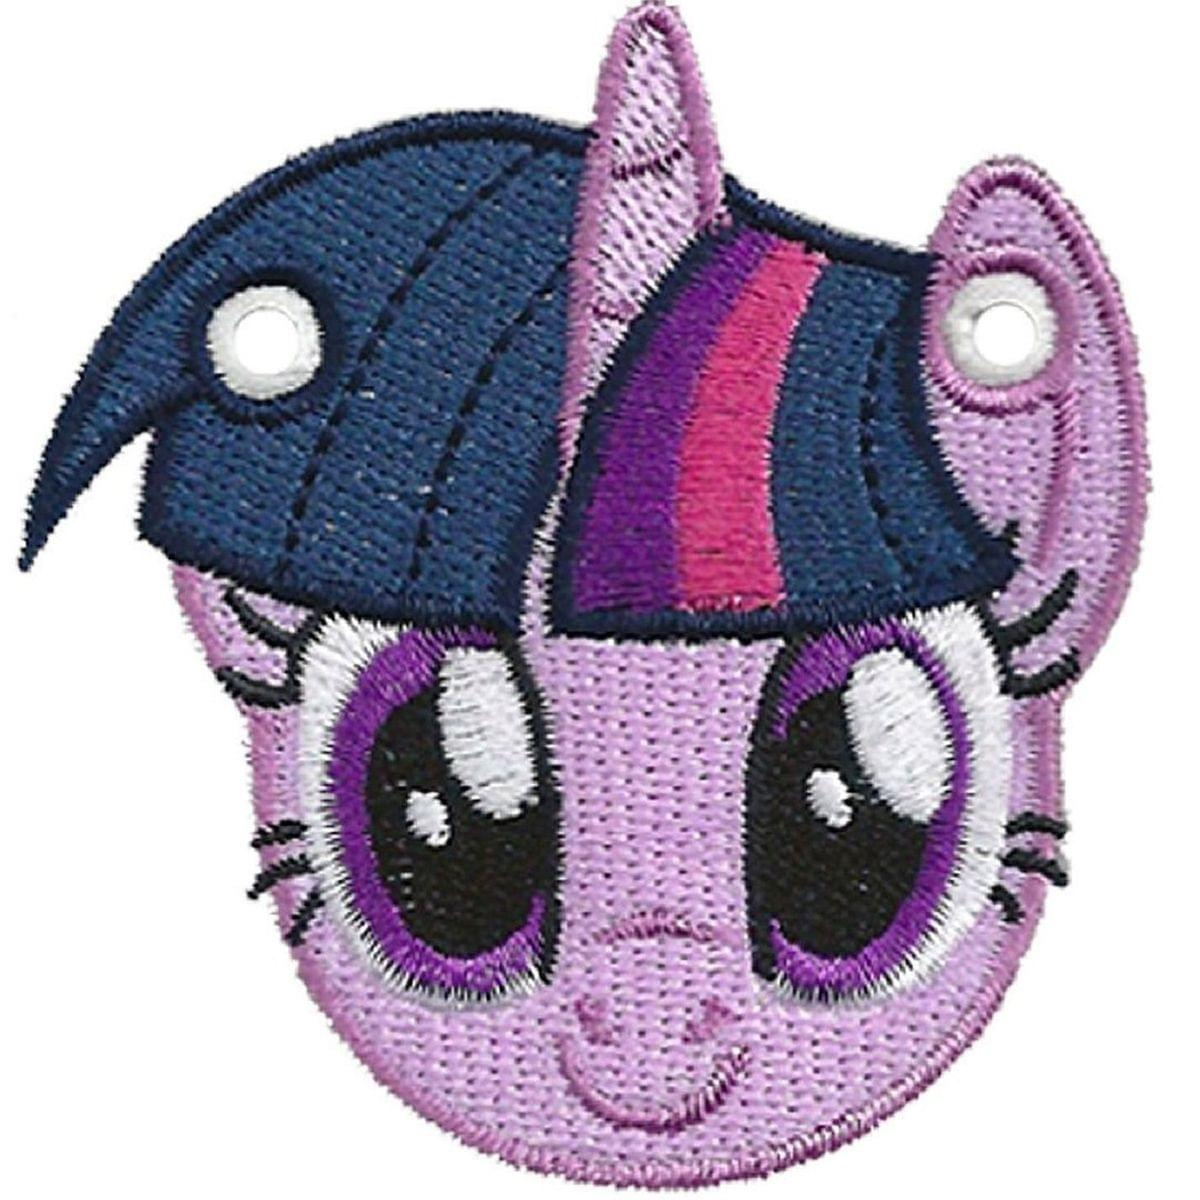 My Little Pony Shwings: Twilight Sparkle (Face)